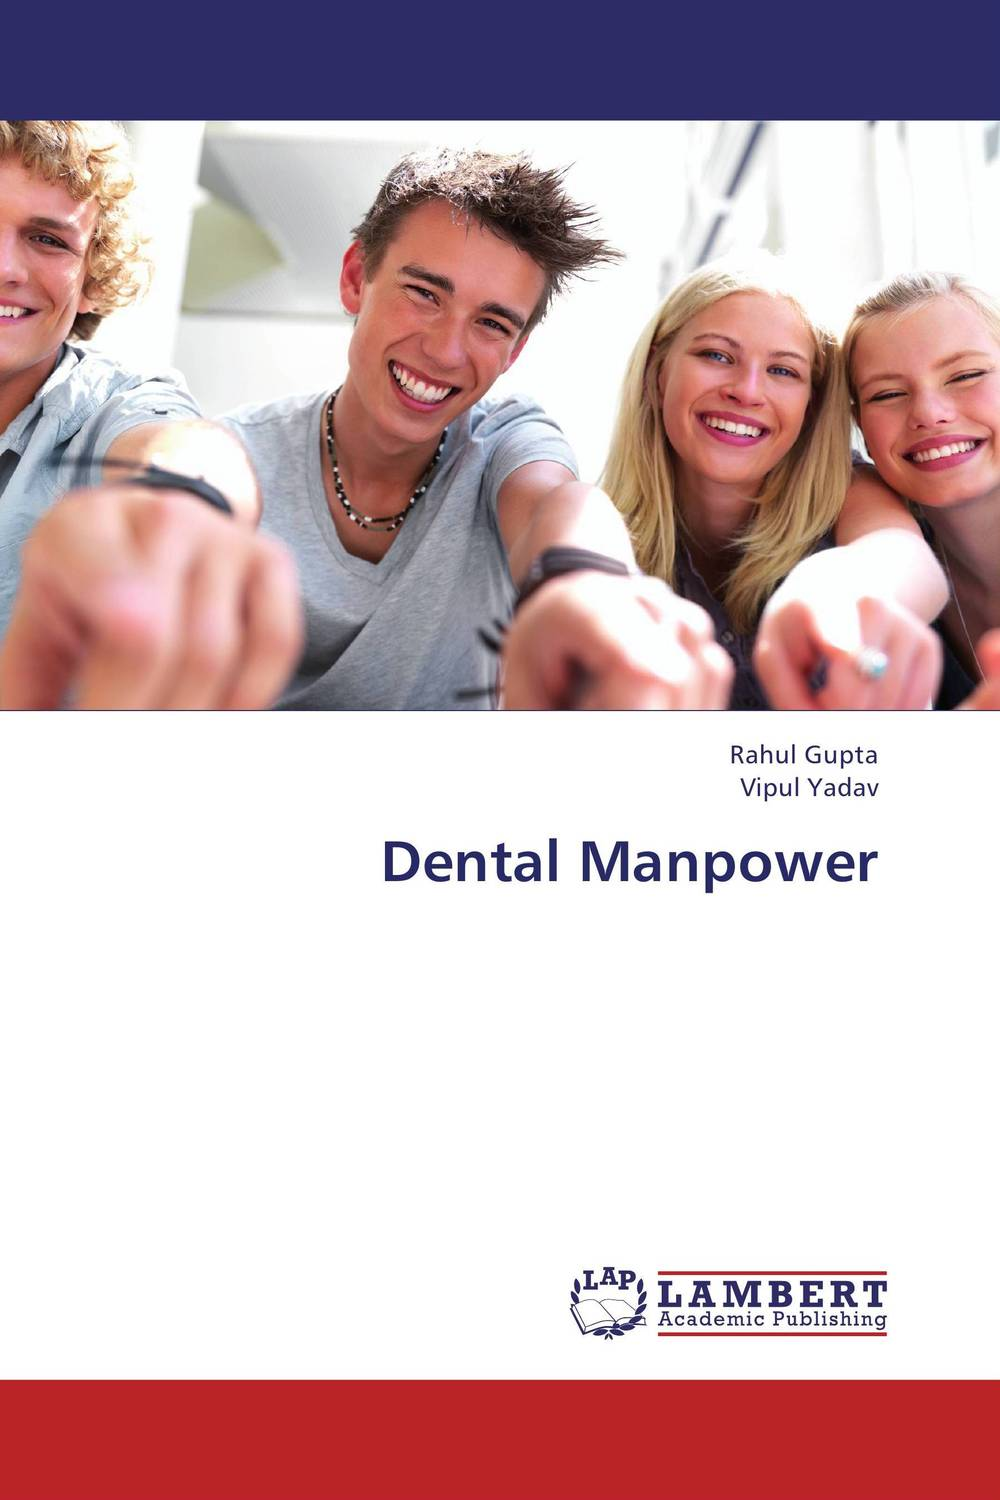 Dental Manpower